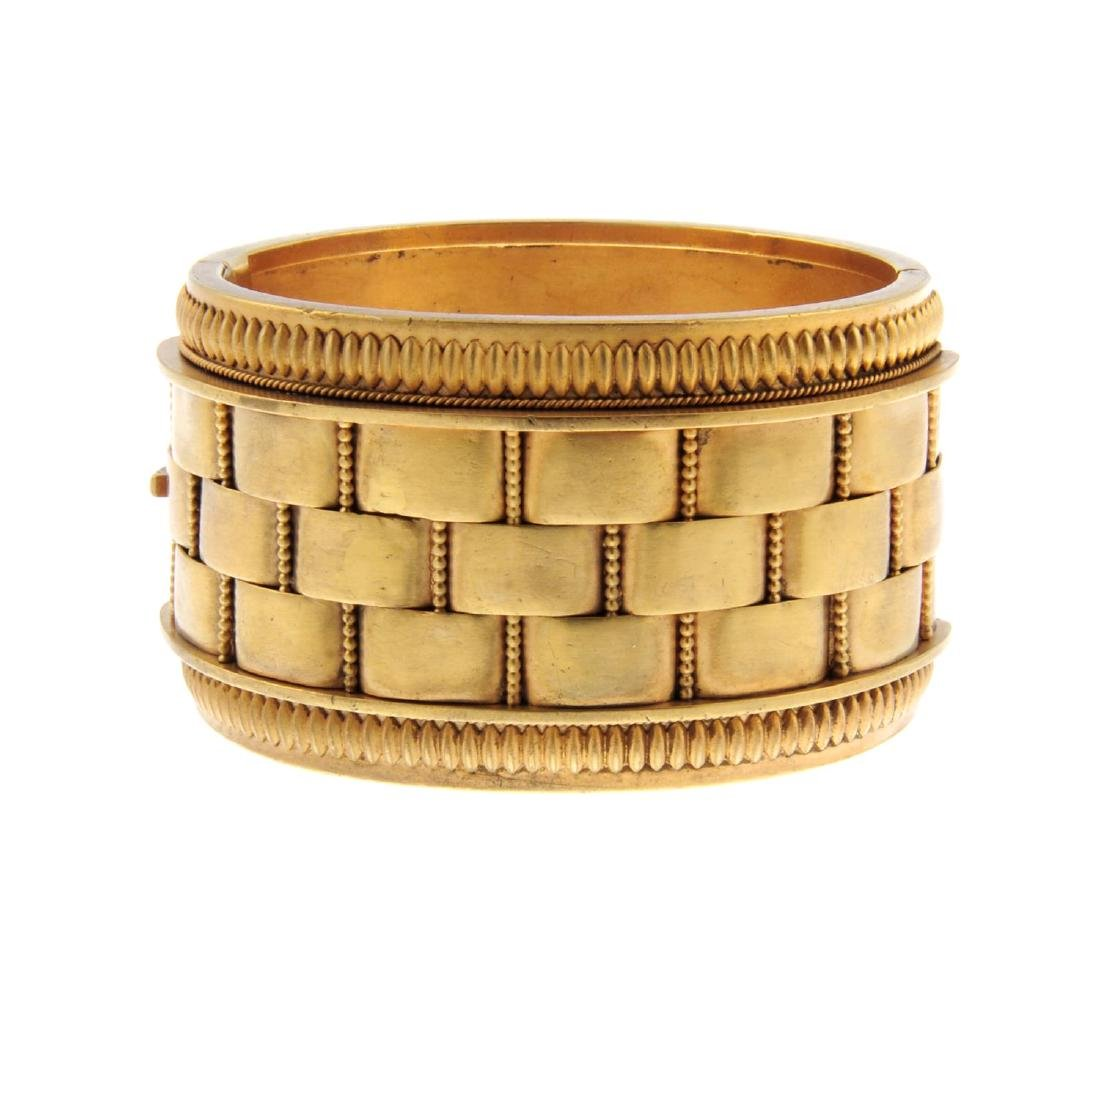 A late Victorian hinged bangle. Designed as a wide